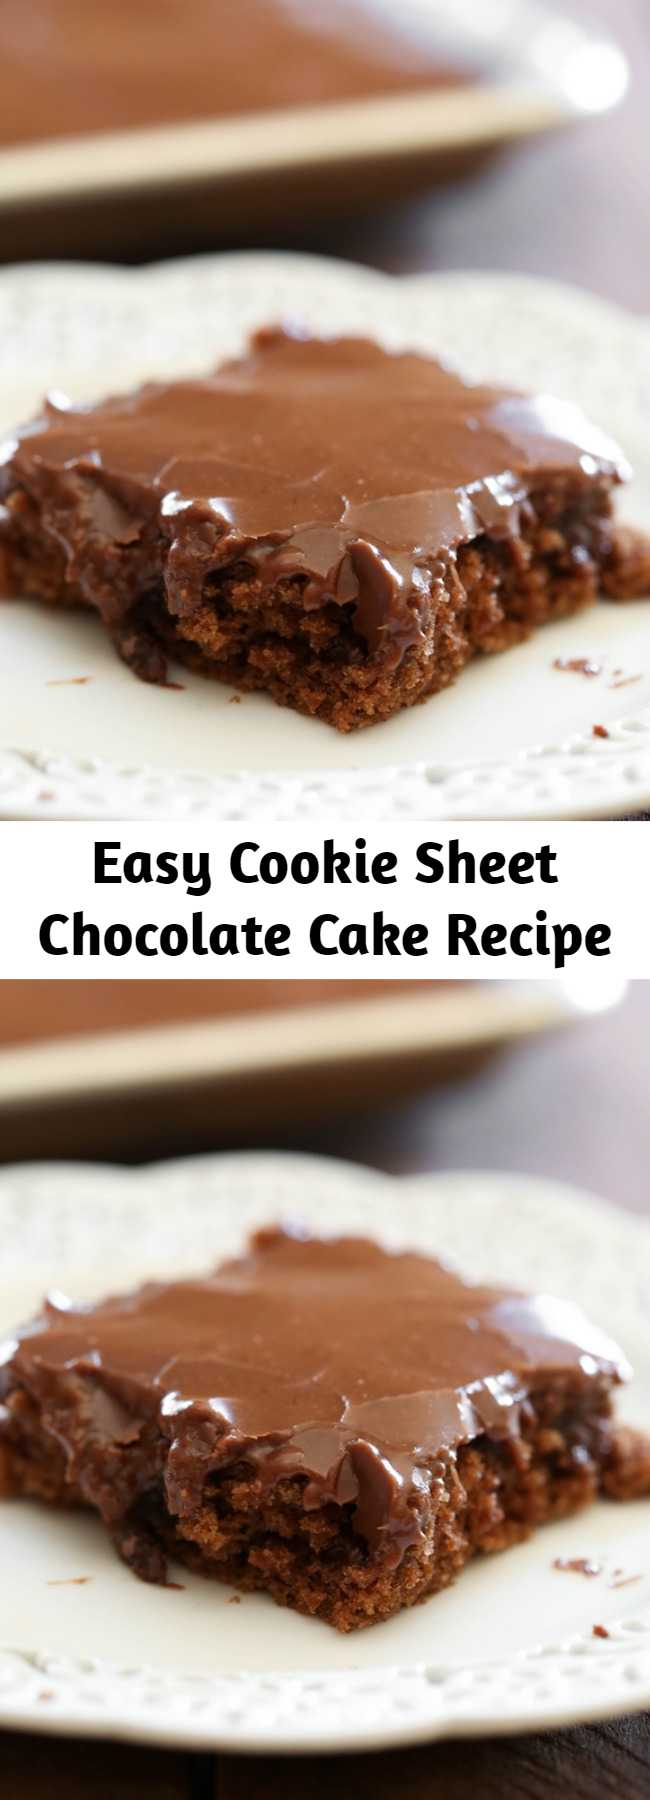 """Easy Cookie Sheet Chocolate Cake Recipe - This has been one of my favorite chocolate recipes since forever!  Whenever my mom would say, """"I want something chocolate, what should I make?""""  This was always the response."""